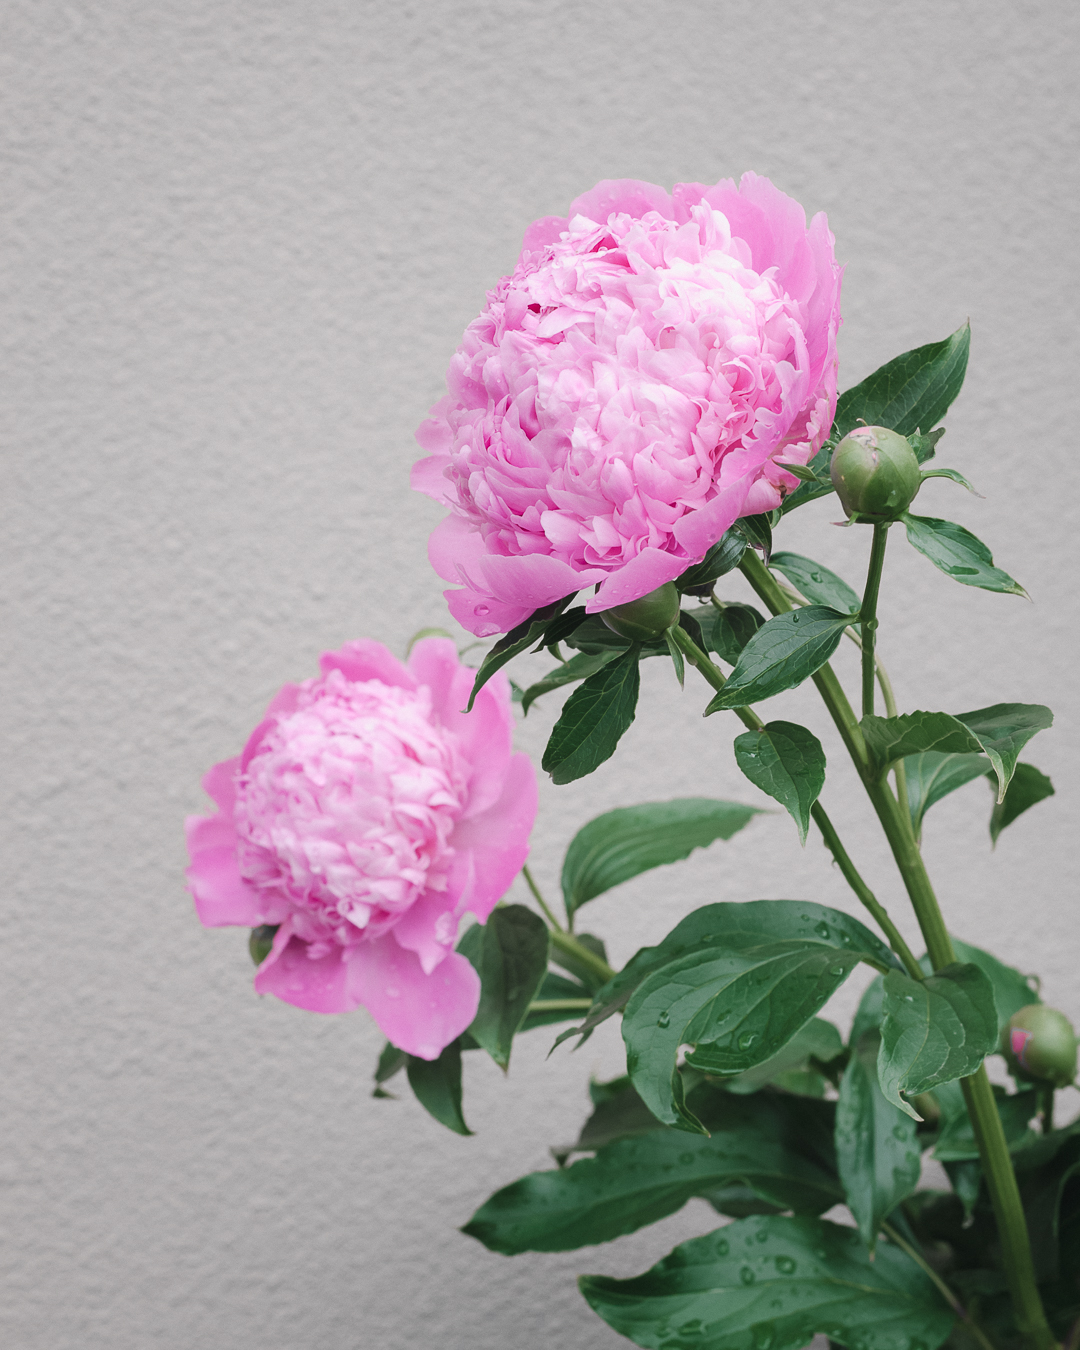 Peonies in Yumie's Garden. Photographed May 24th.